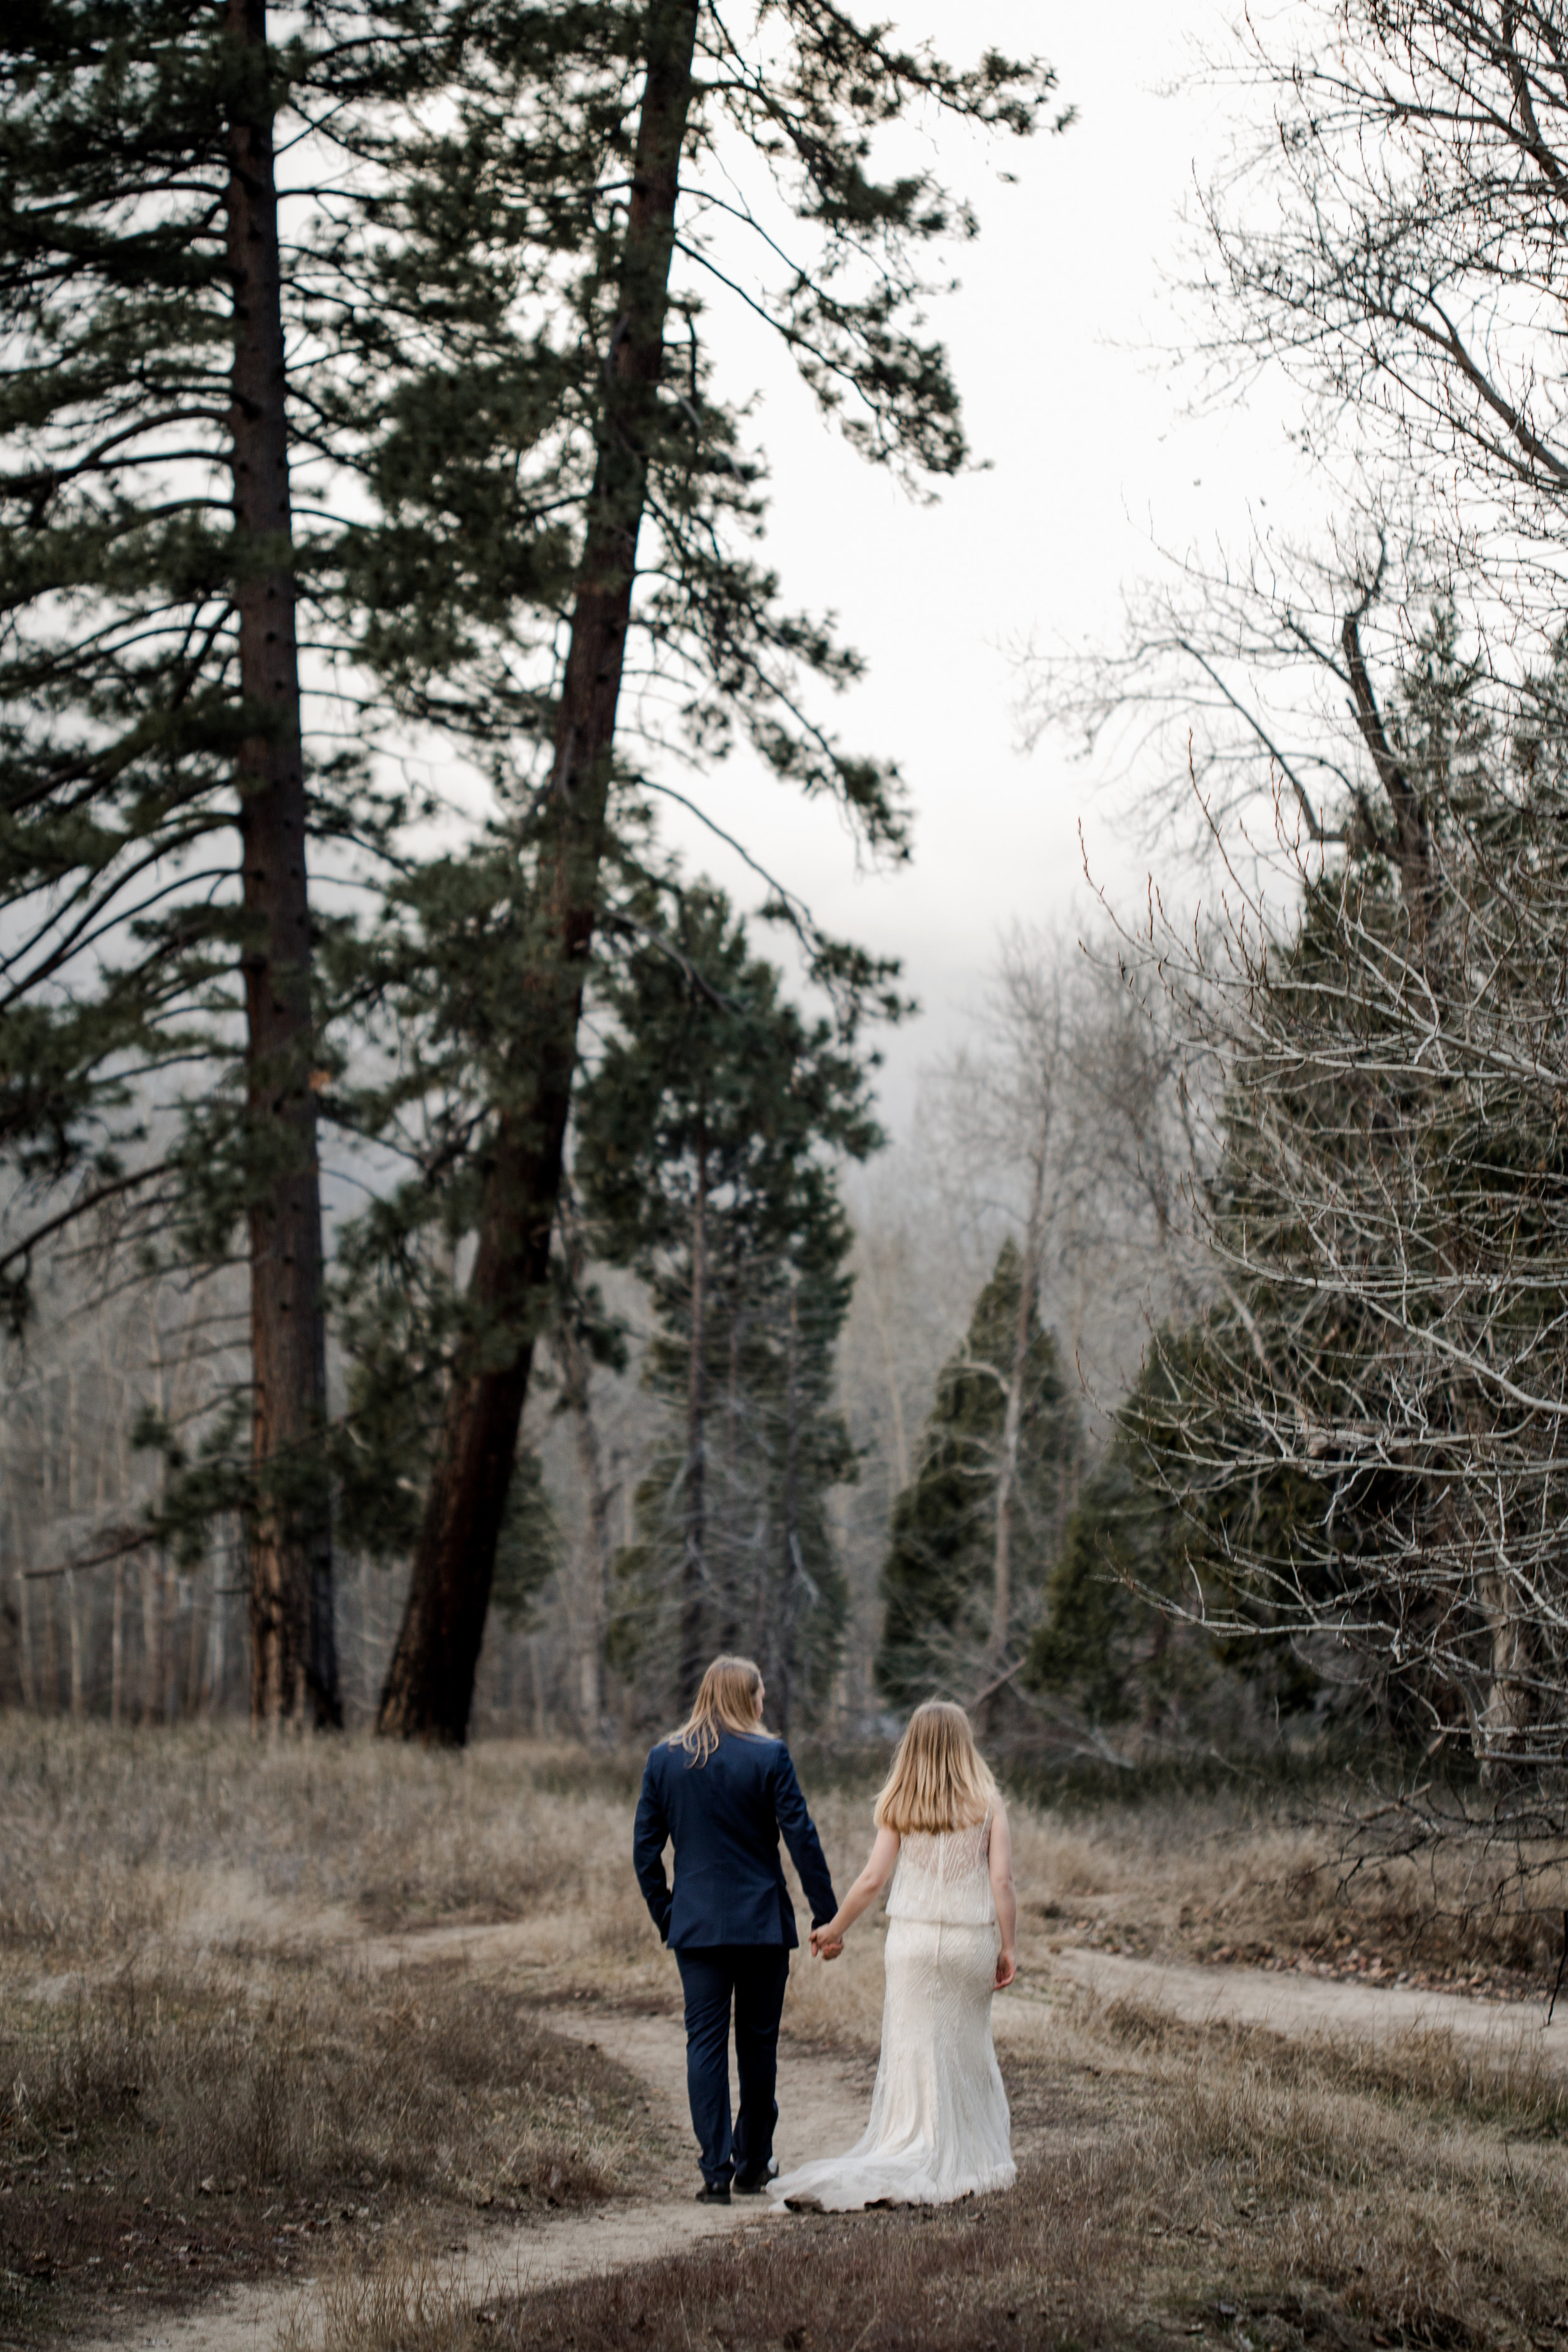 nicole-daacke-photography-yousemite-national-park-elopement-photographer-winter-cloud-moody-elope-inspiration-yosemite-valley-tunnel-view-winter-cloud-fog-weather-wedding-photos-57.jpg